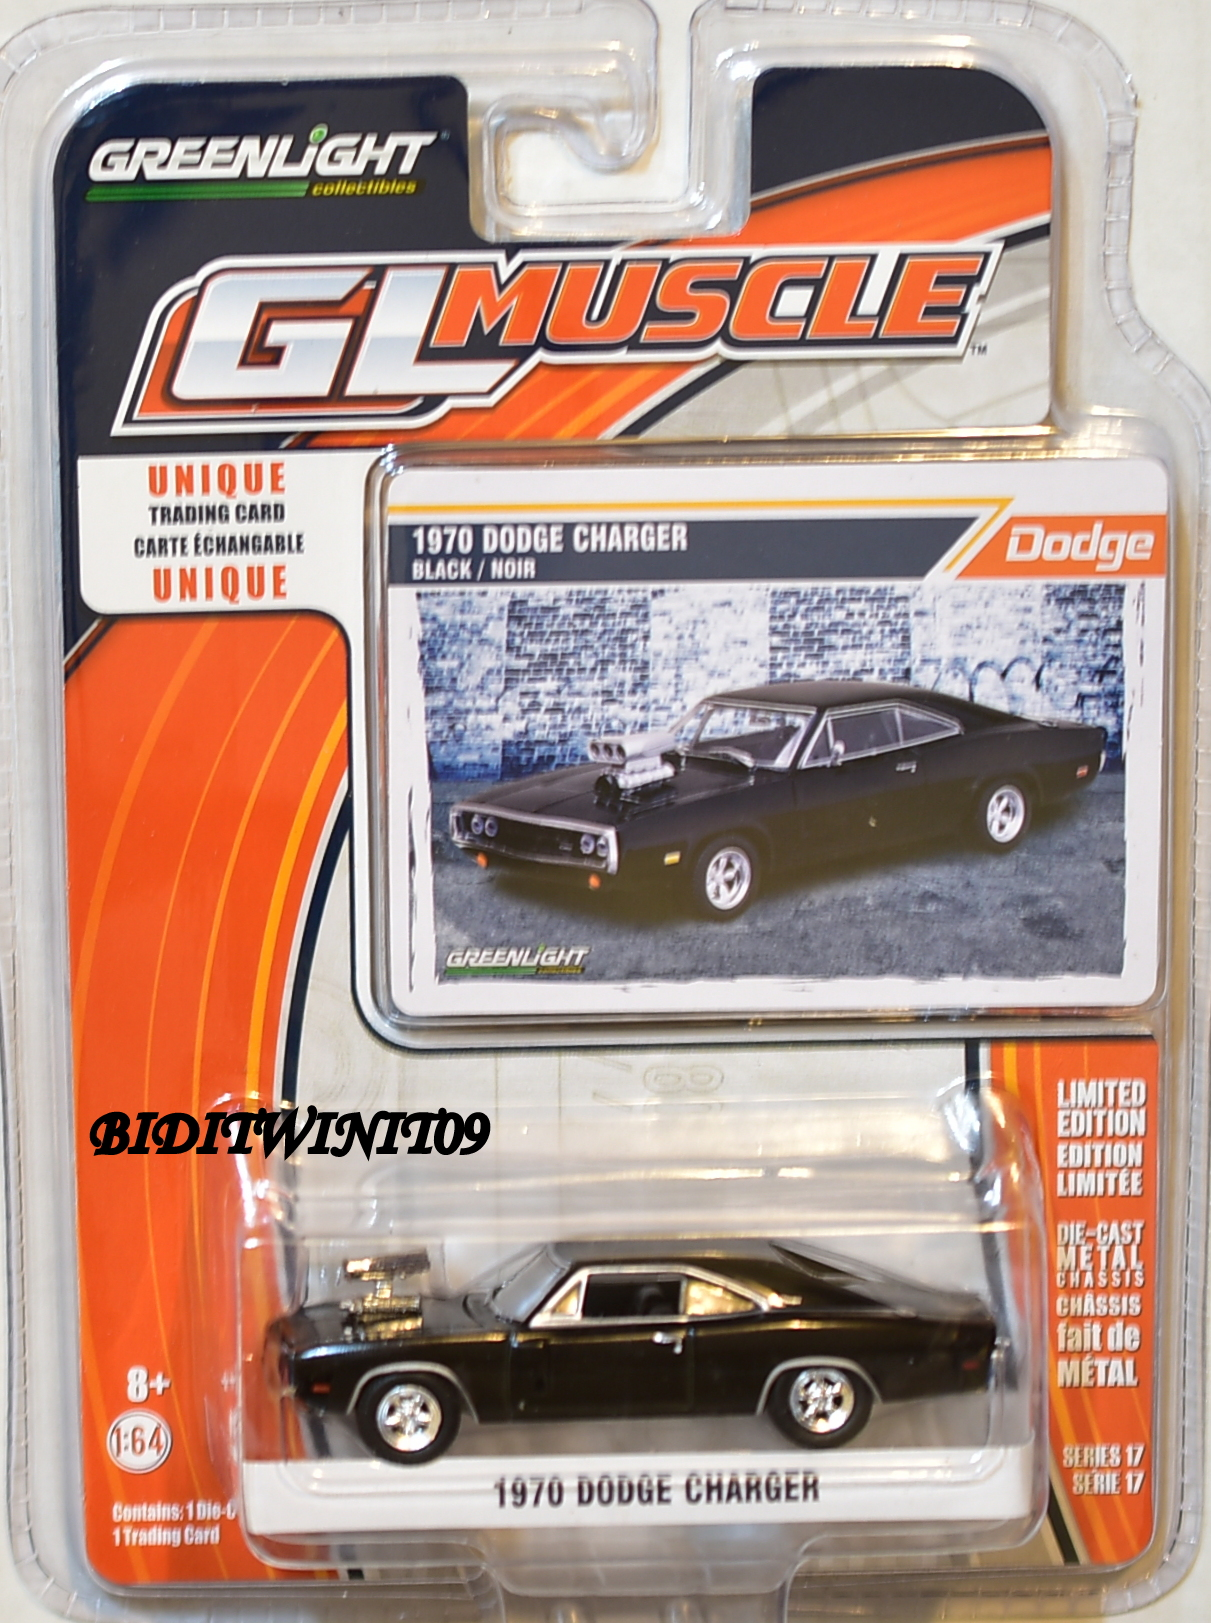 GREENLIGHT GLMUSCLE SERIES 17 1970 DODGE CHARGER BLACK